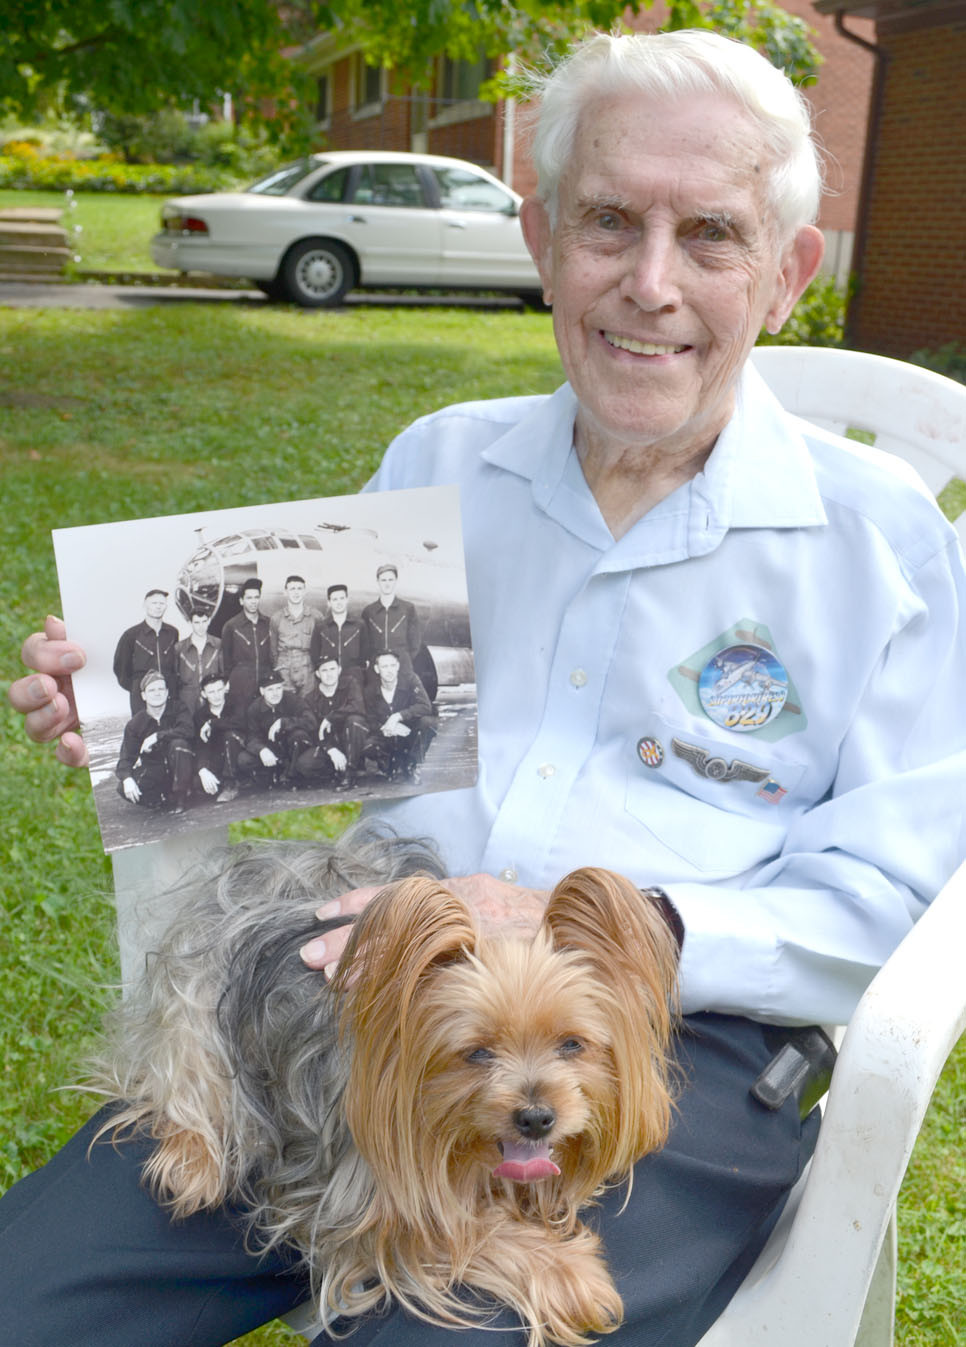 LONNIE ADKINS JR., a Midway resident, is pictured with a photo of his 11-man B-29 crew and holding his teacup yorkie, Zoey. (Photo by Bob Vlach)